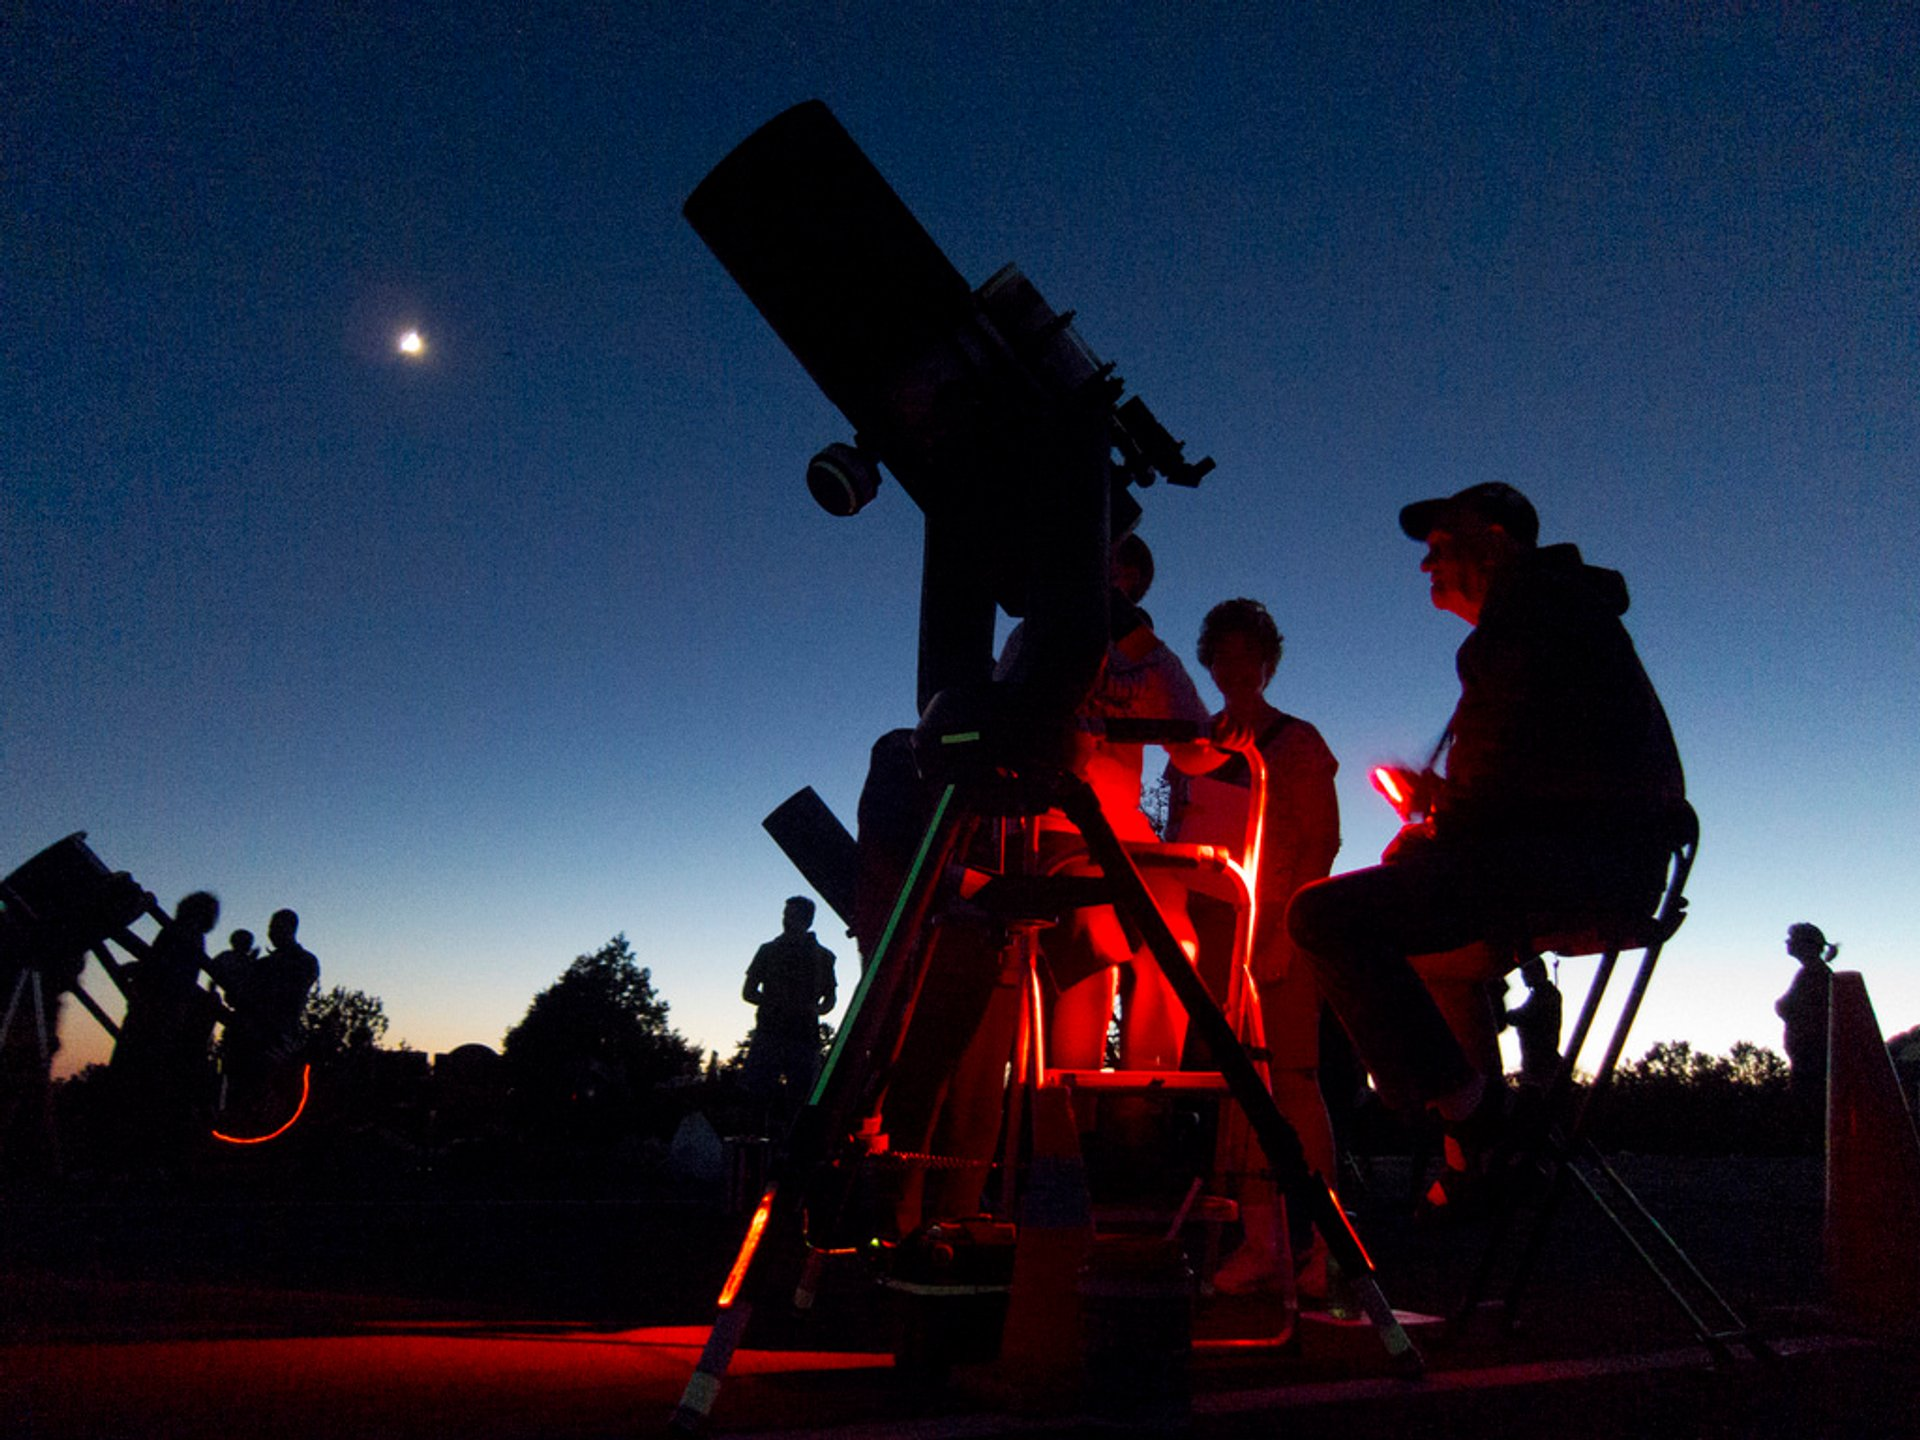 Grand Canyon Star Party in Grand Canyon - Best Season 2019